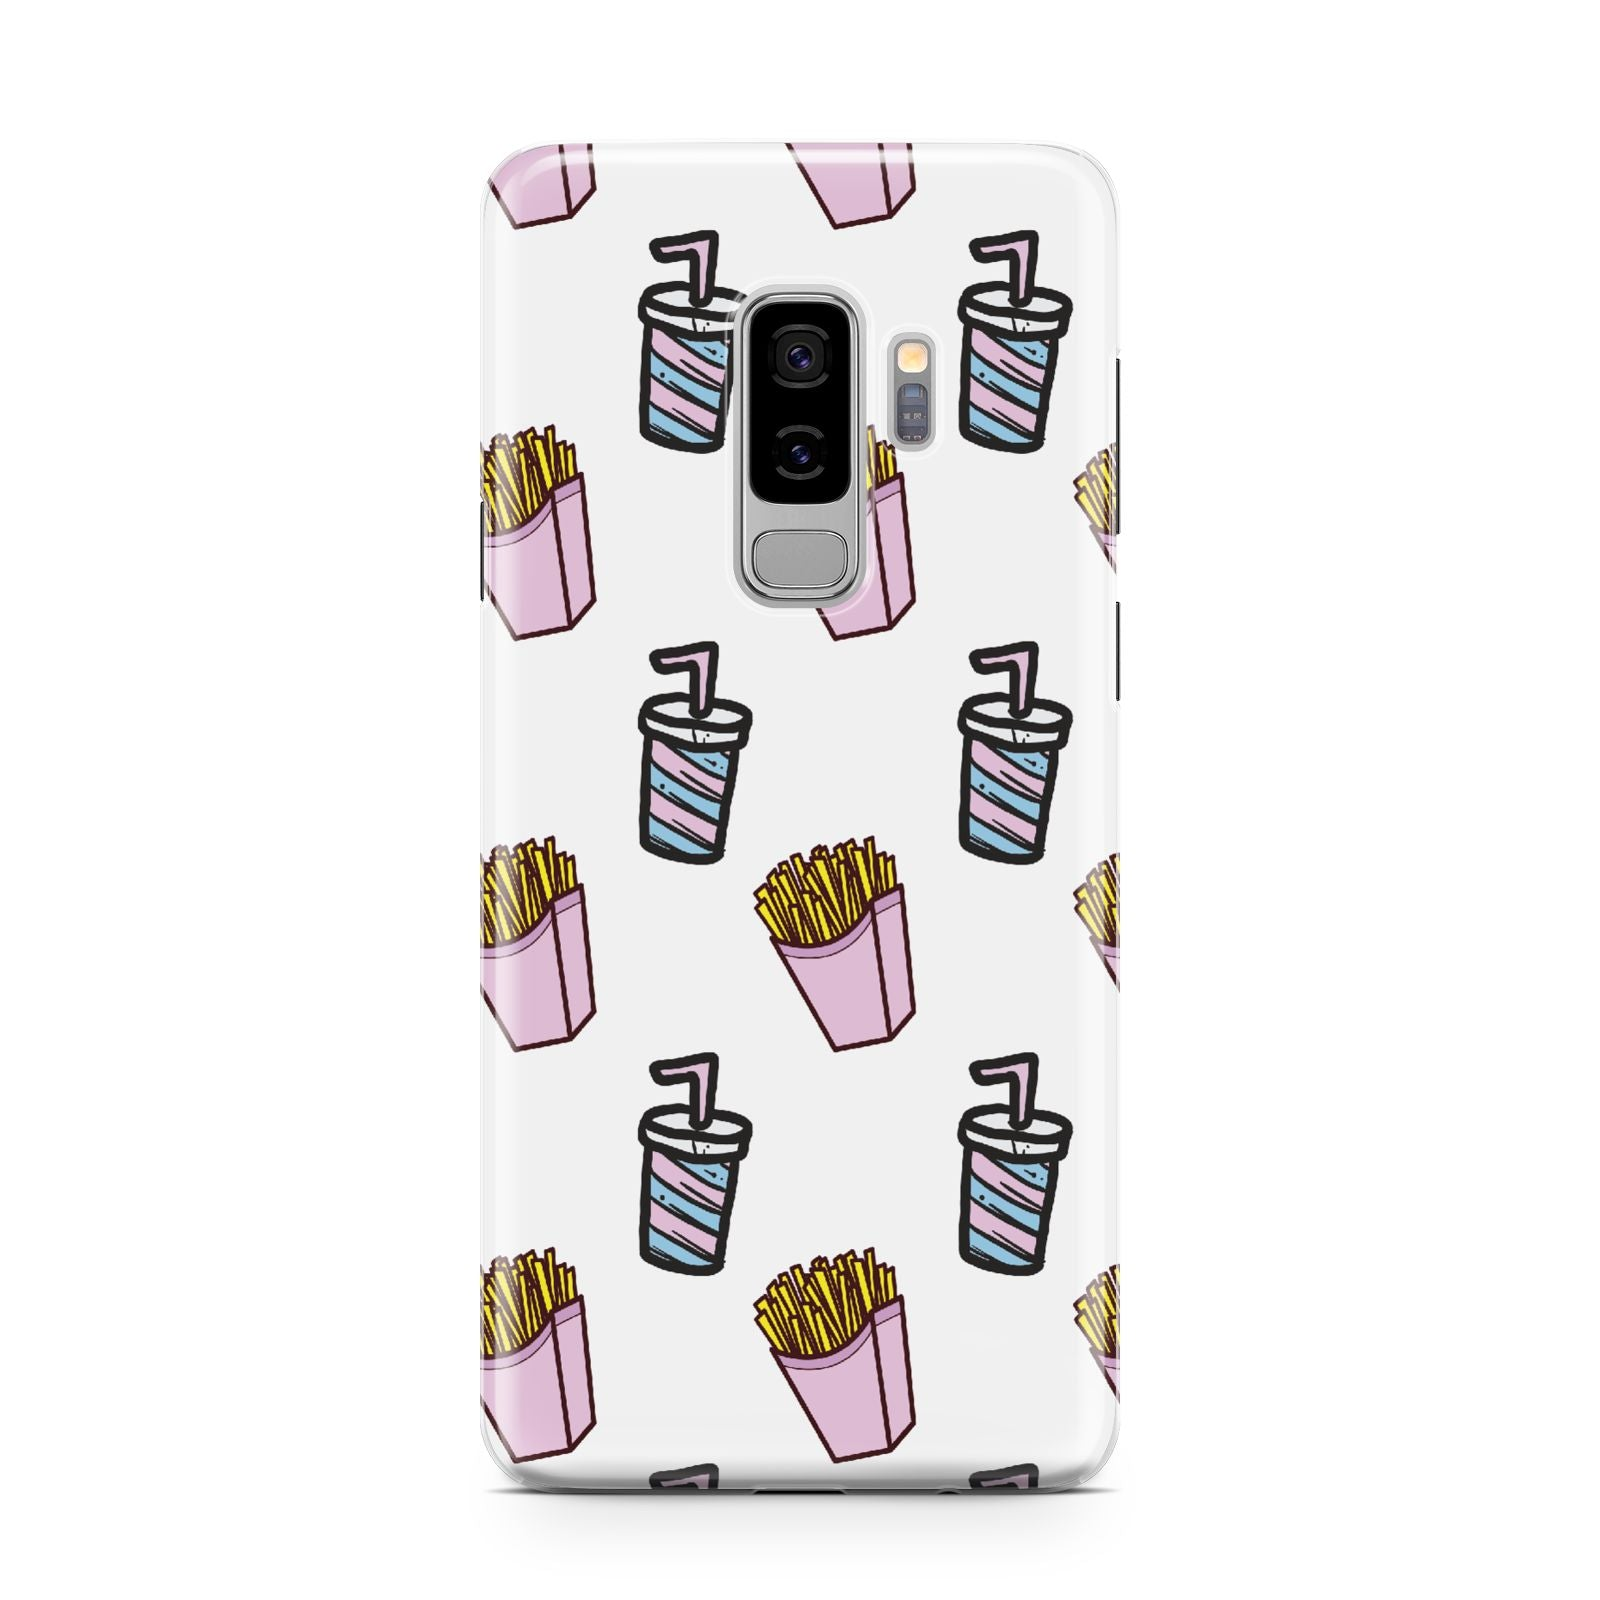 Fries Shake Fast Food Samsung Galaxy S9 Plus Case on Silver phone